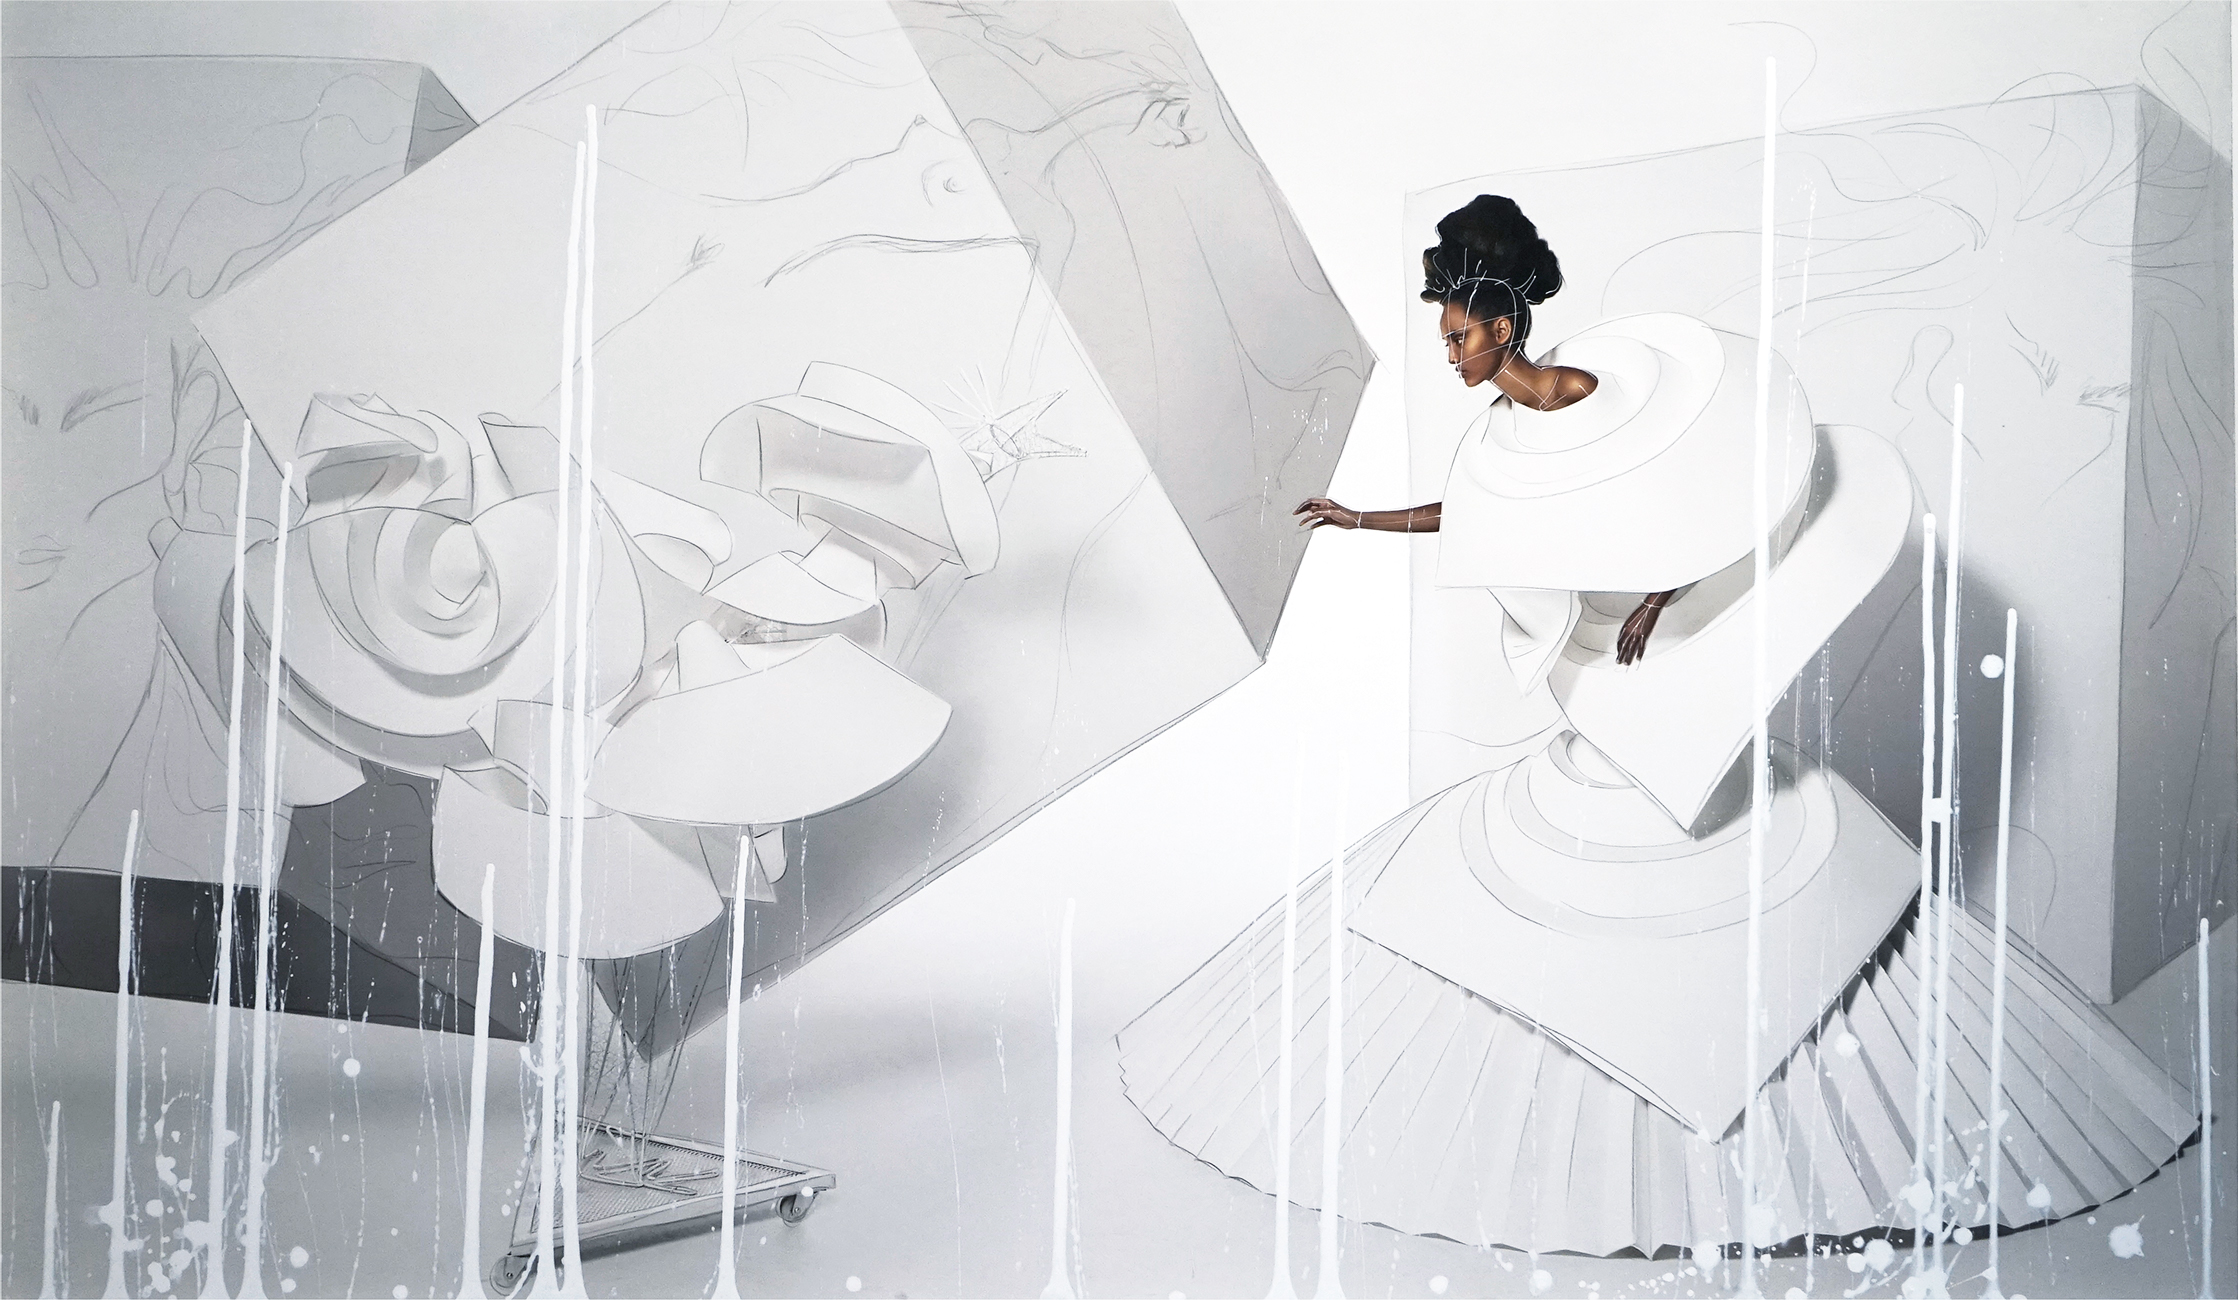 Black Girl in Origami Dress with Rooster I, 2010